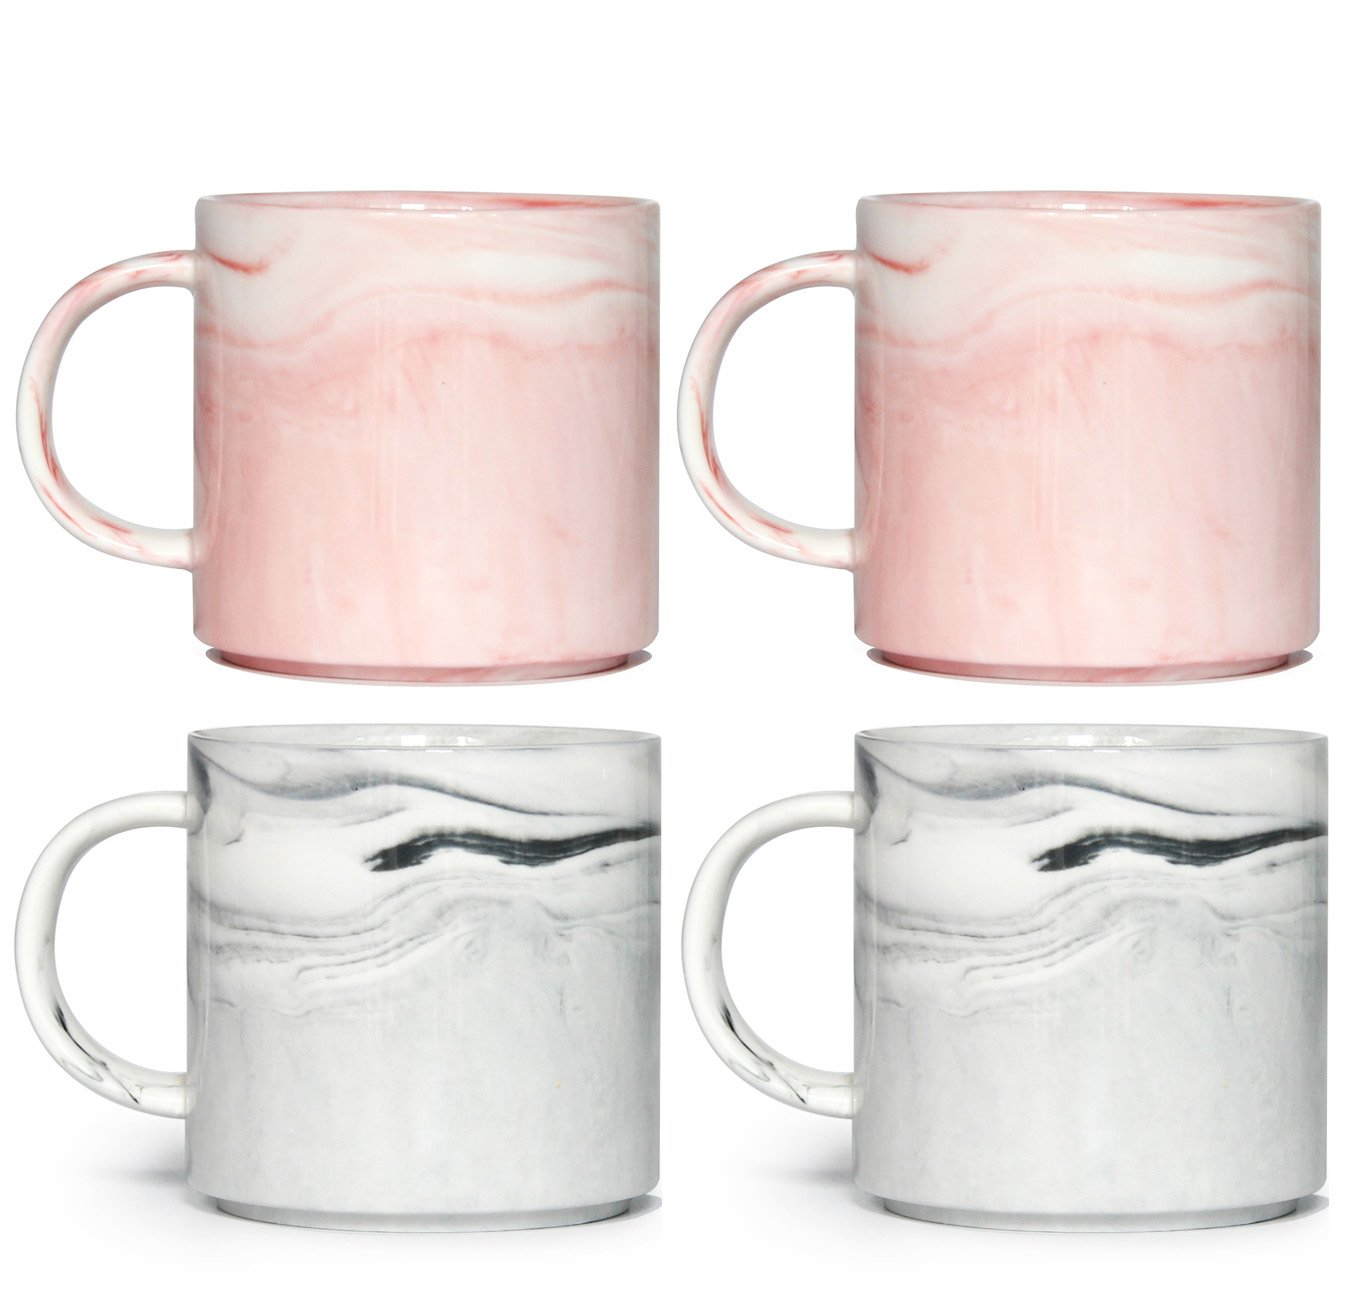 12 oz Stackable Coffee Mugs, Zocokey M101 Novelty Marble Ceramic Cup for Boy Girl lover, Set of 2, Gray & Pink